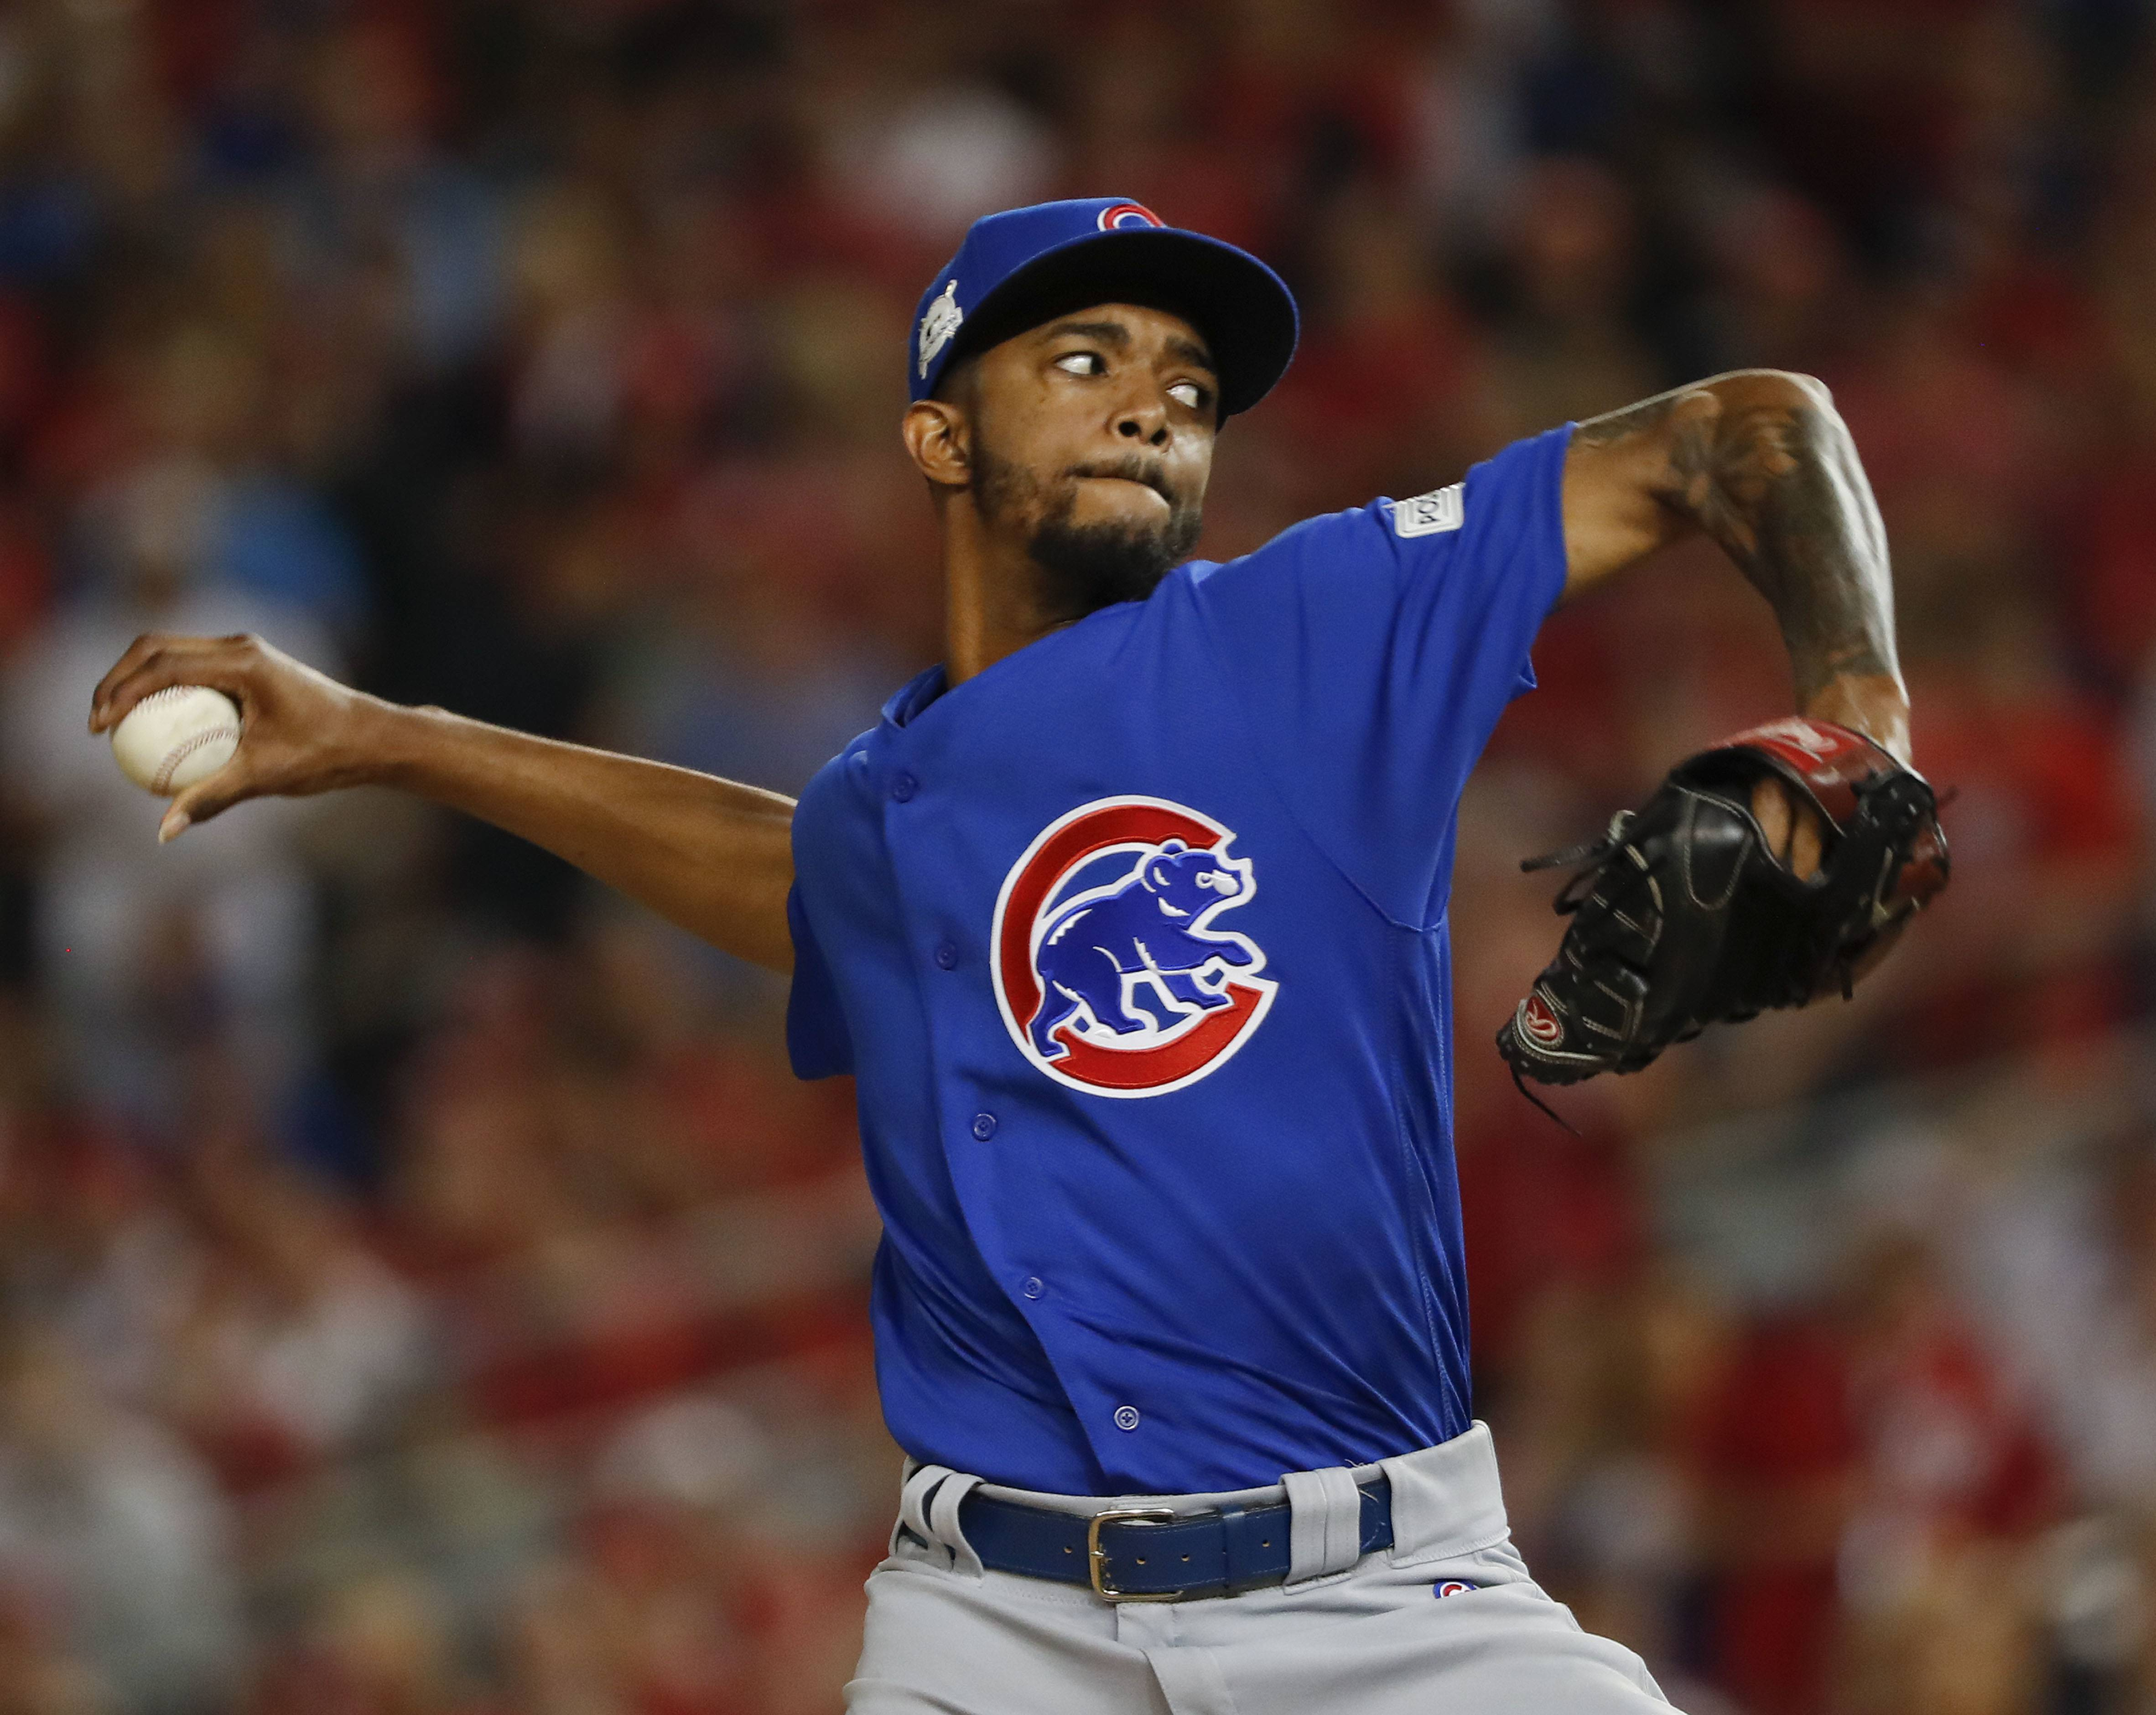 Chicago Cubs relief pitcher Carl Edwards Jr. throws against the Washington Nationals in the eighth inning of Game 1 of baseball's National League Division Series, at Nationals Park, Friday, Oct. 6, 2017, in Washington.